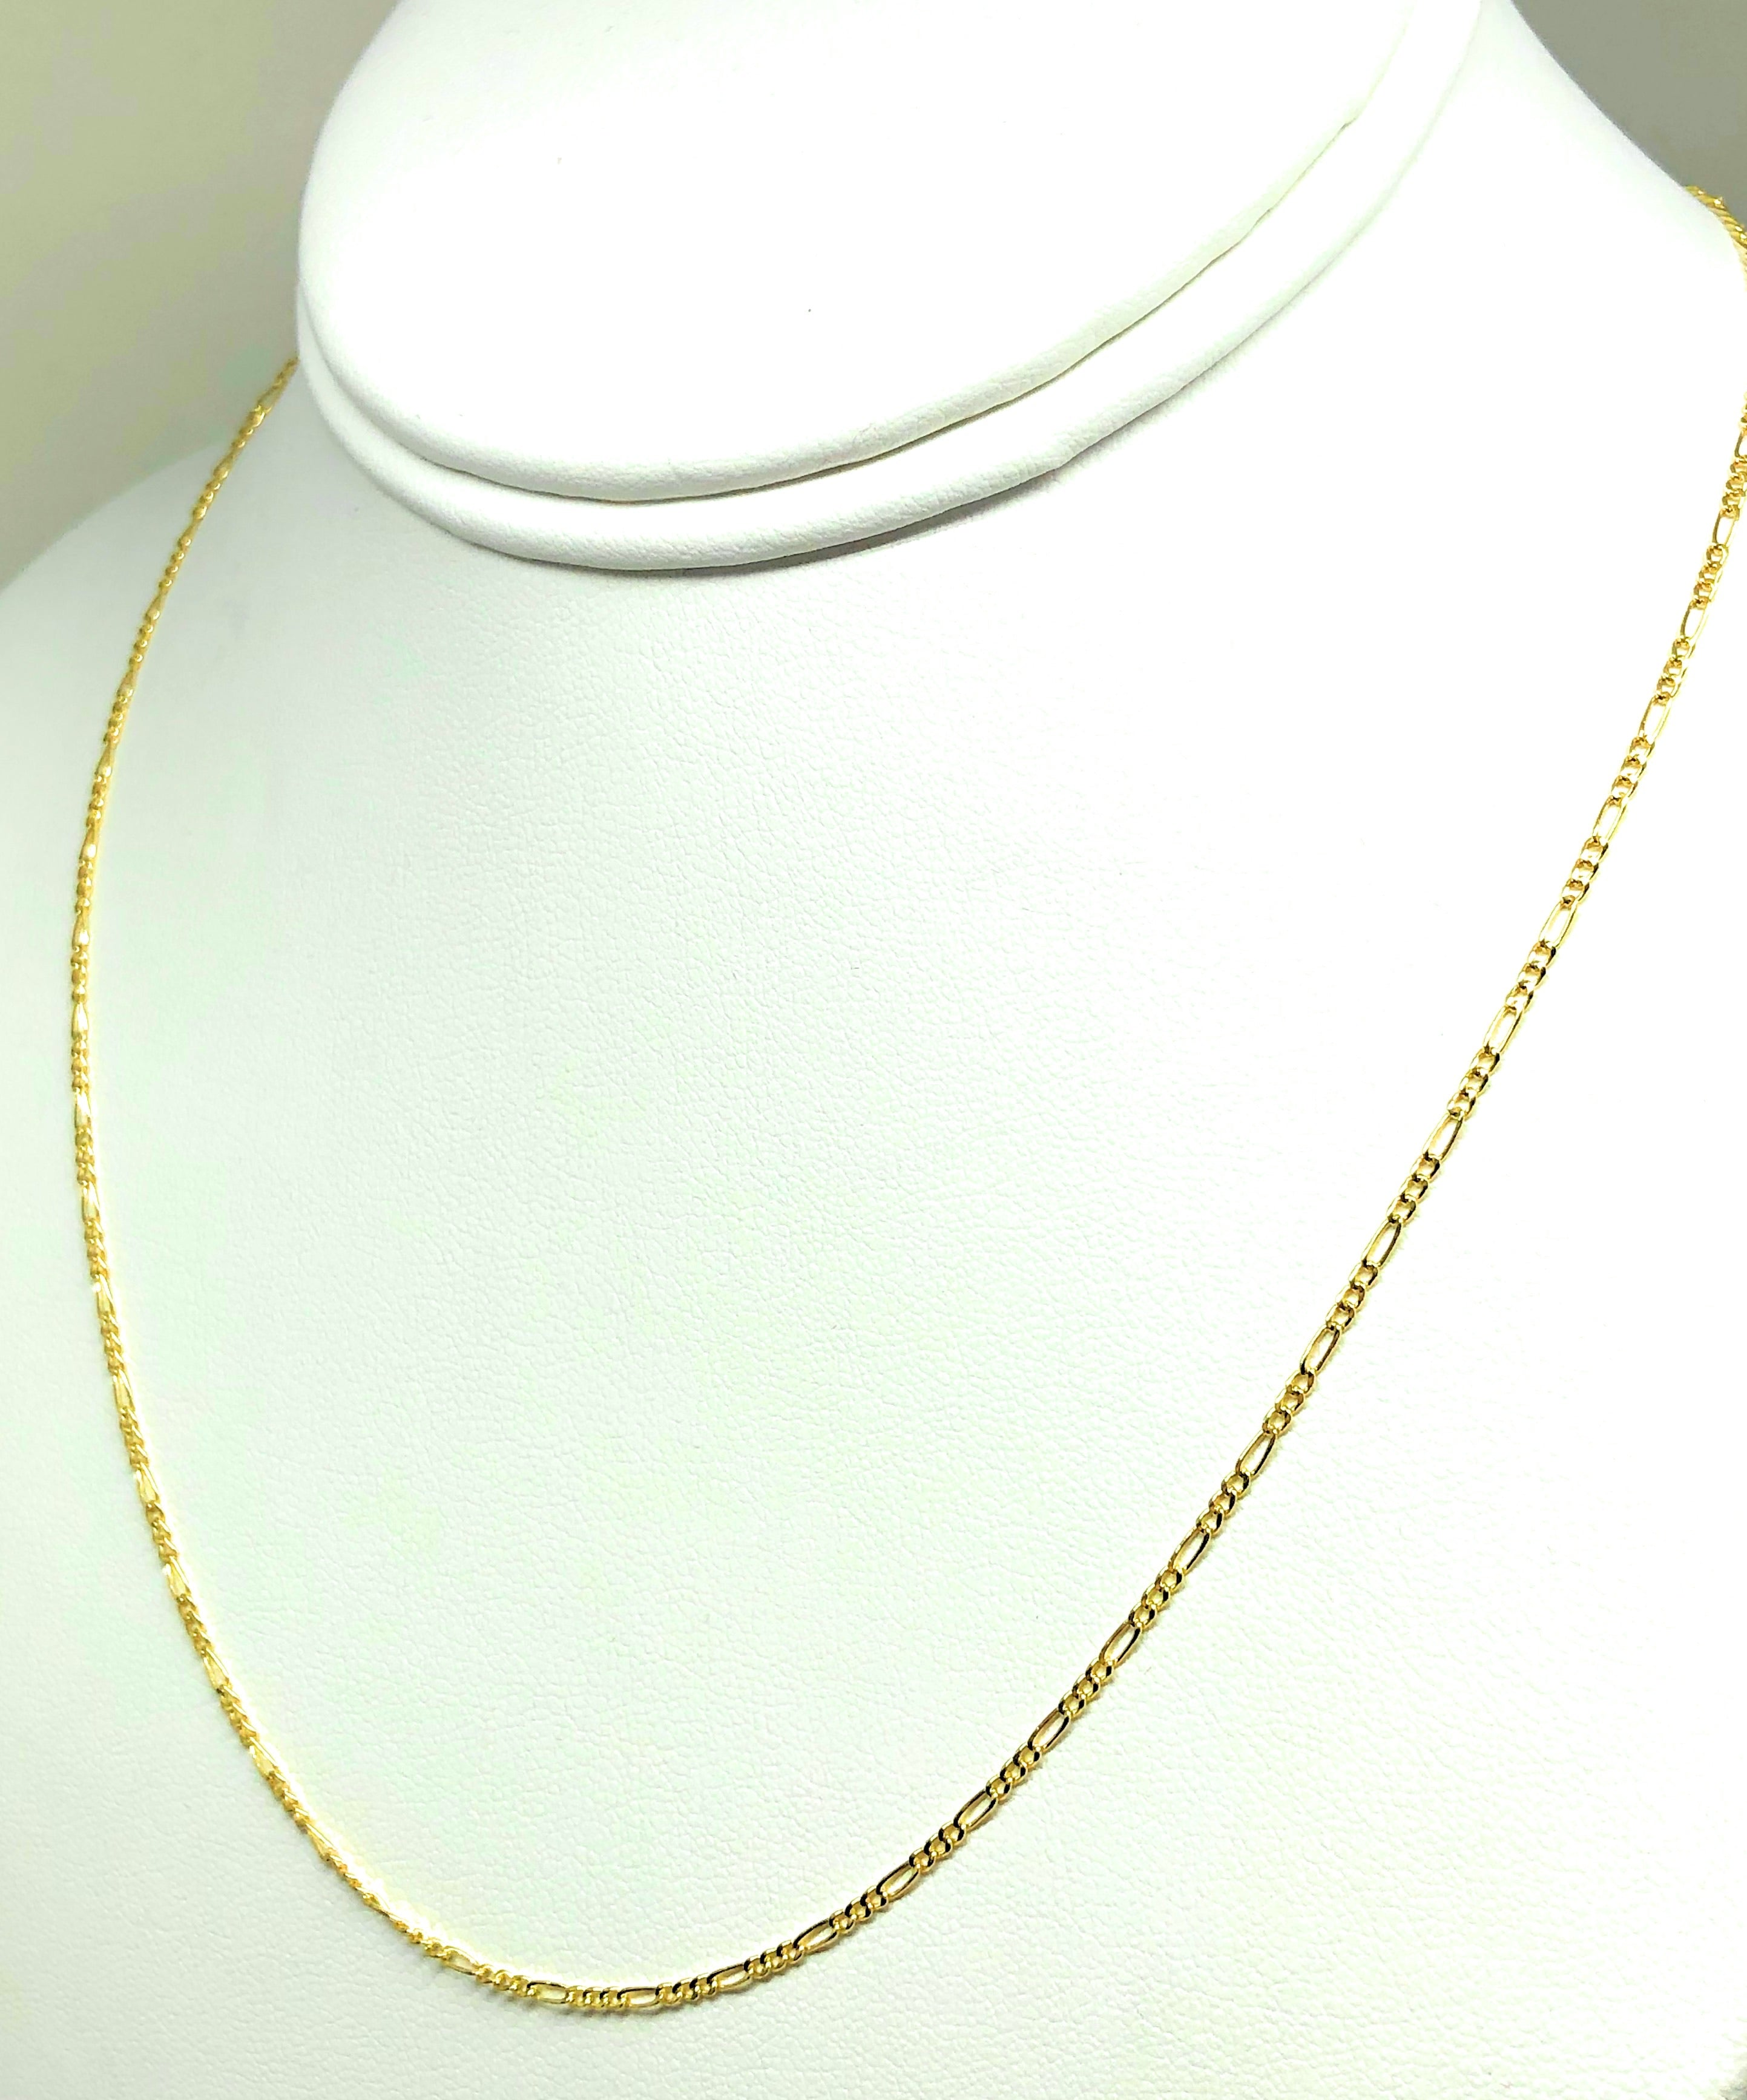 10k Solid Gold Figaro Chain 16-18 inch 1.5mm VERY THIN (Semi-Hollow Style)